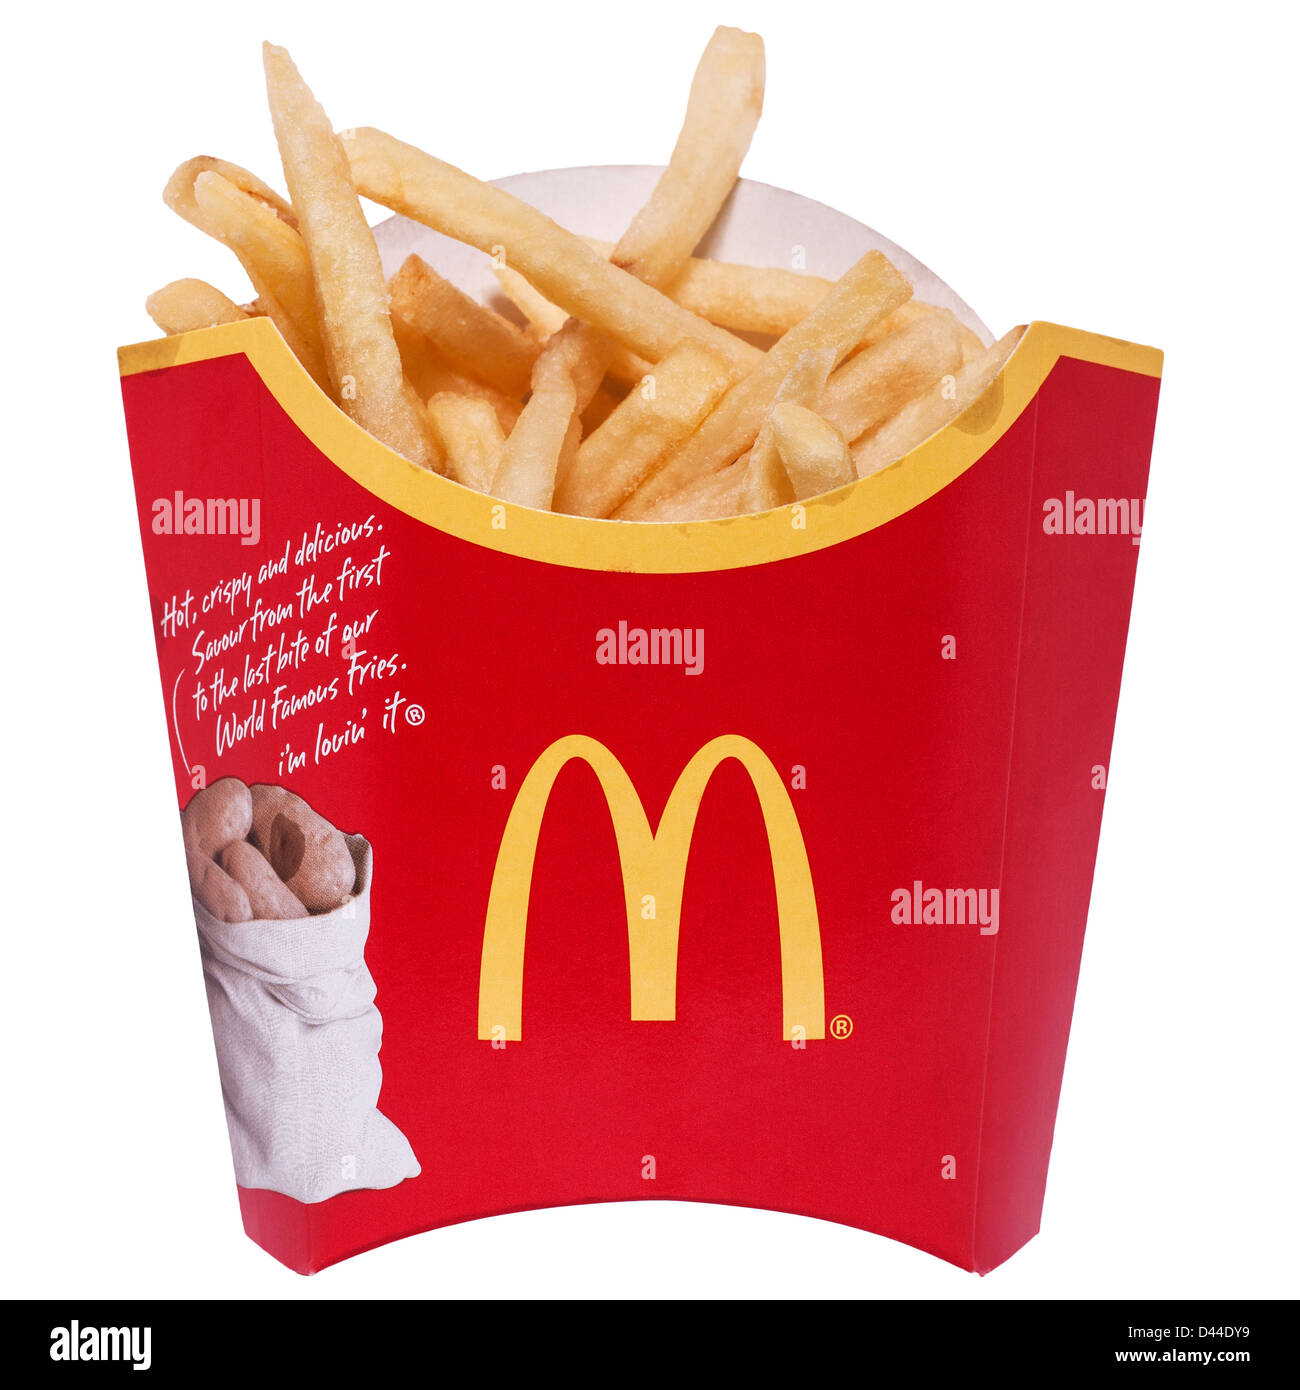 A portion of Mcdonalds fries on a white background - Stock Image